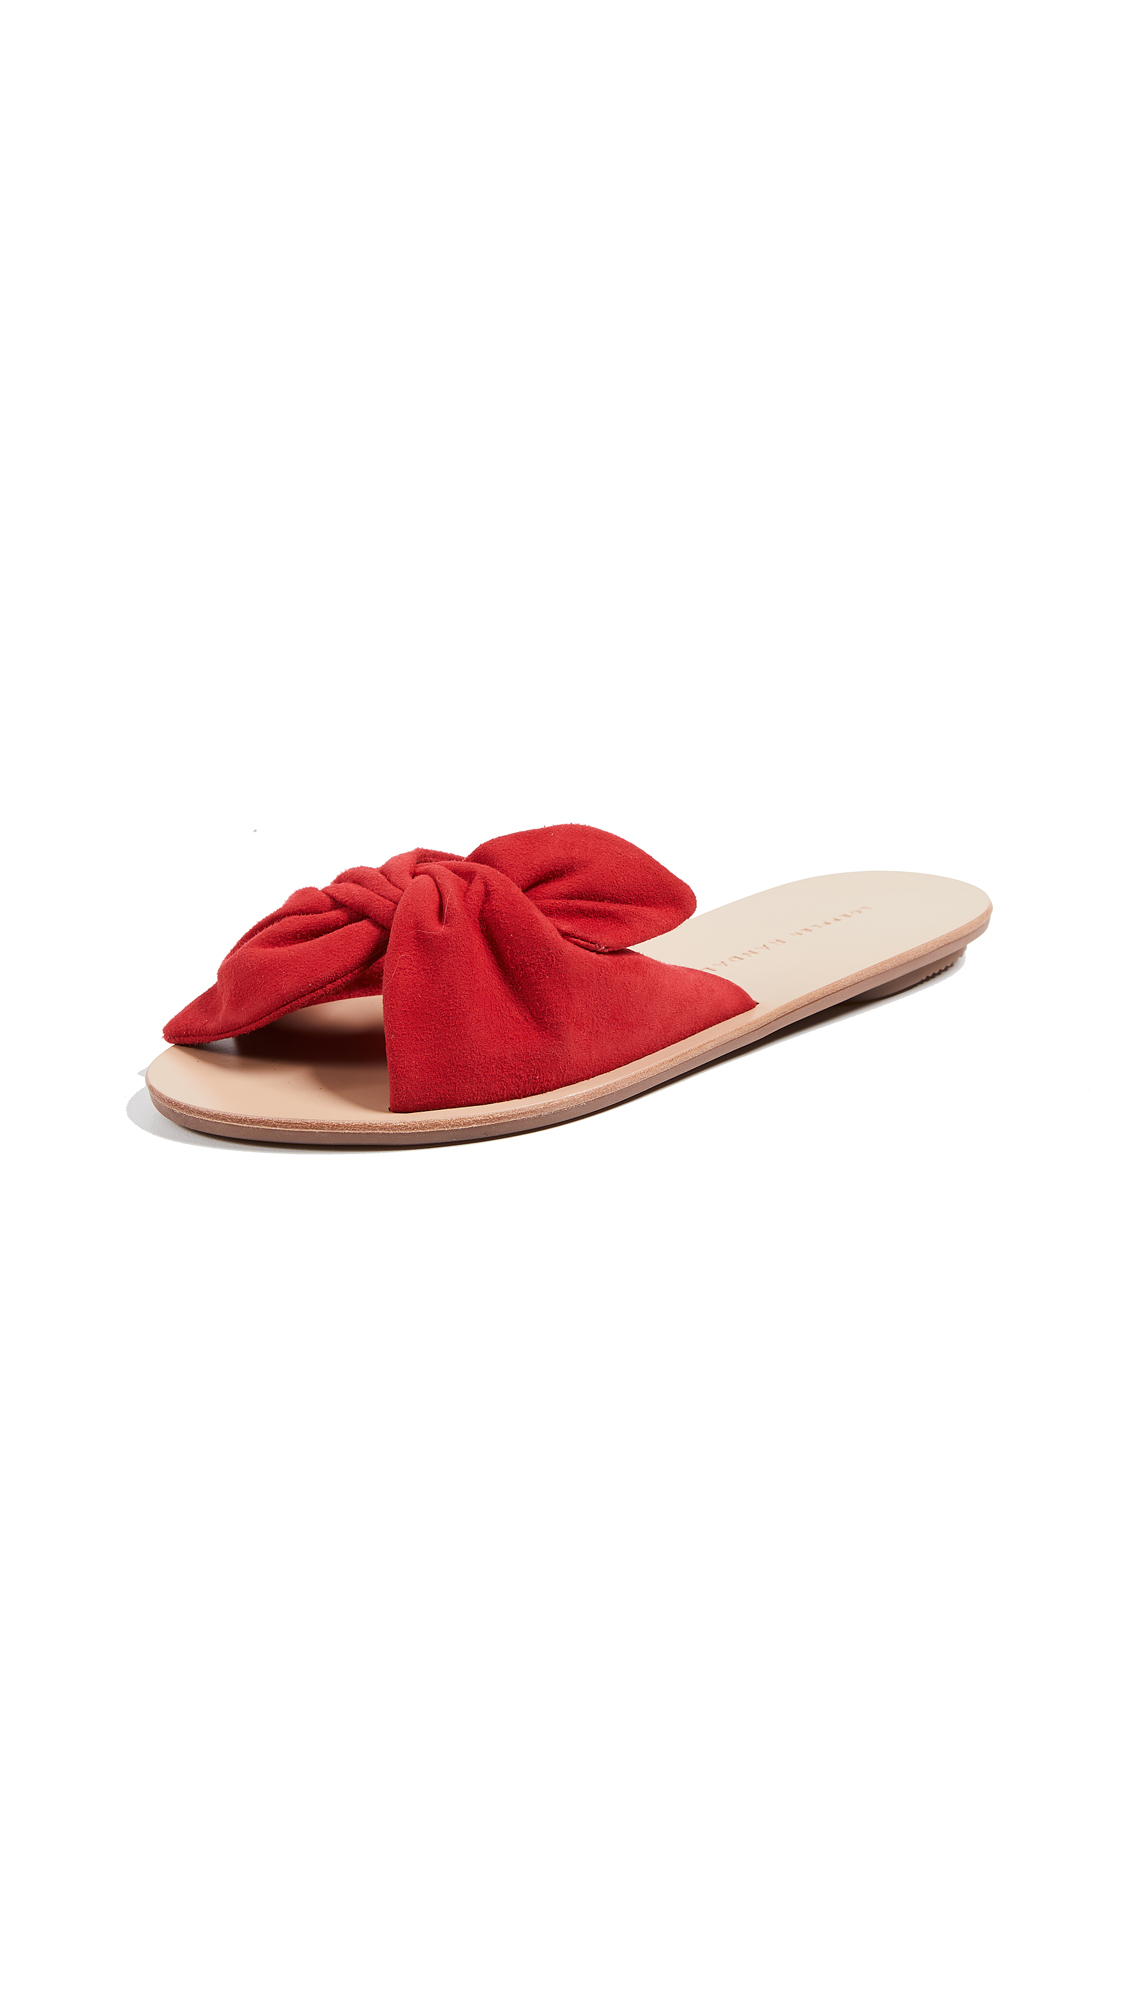 Loeffler Randall Phoebe Knotted Slide Sandals - Bright Red